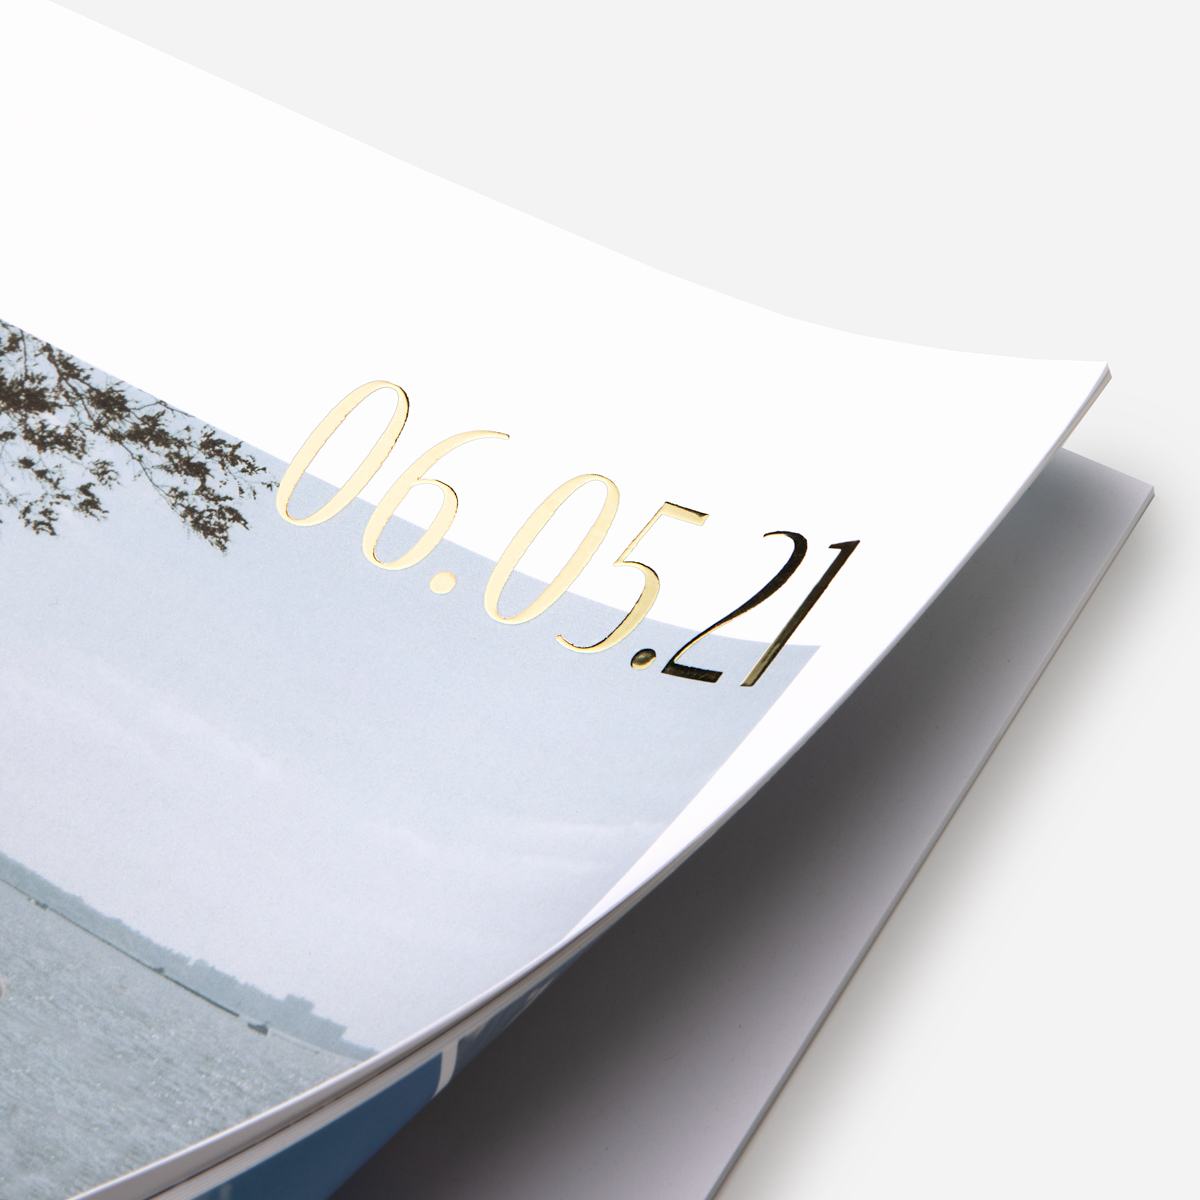 Zoomed in on foil cover title of Softcover Photo Book